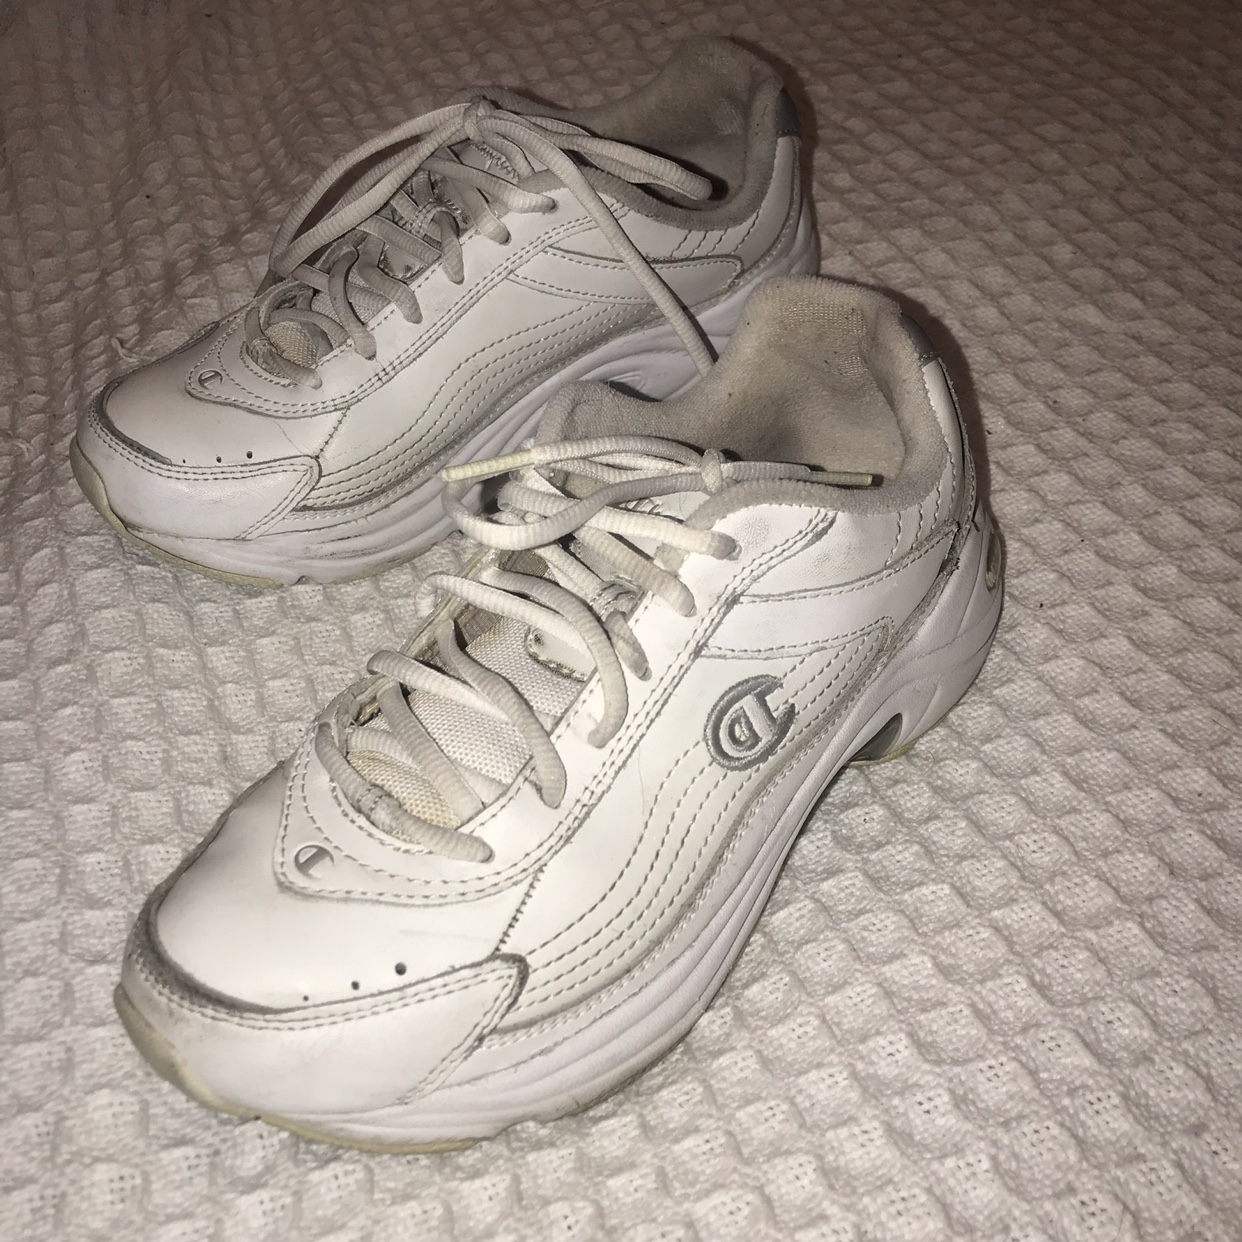 Vintage Champion Recoil sneakers in white and , Depop